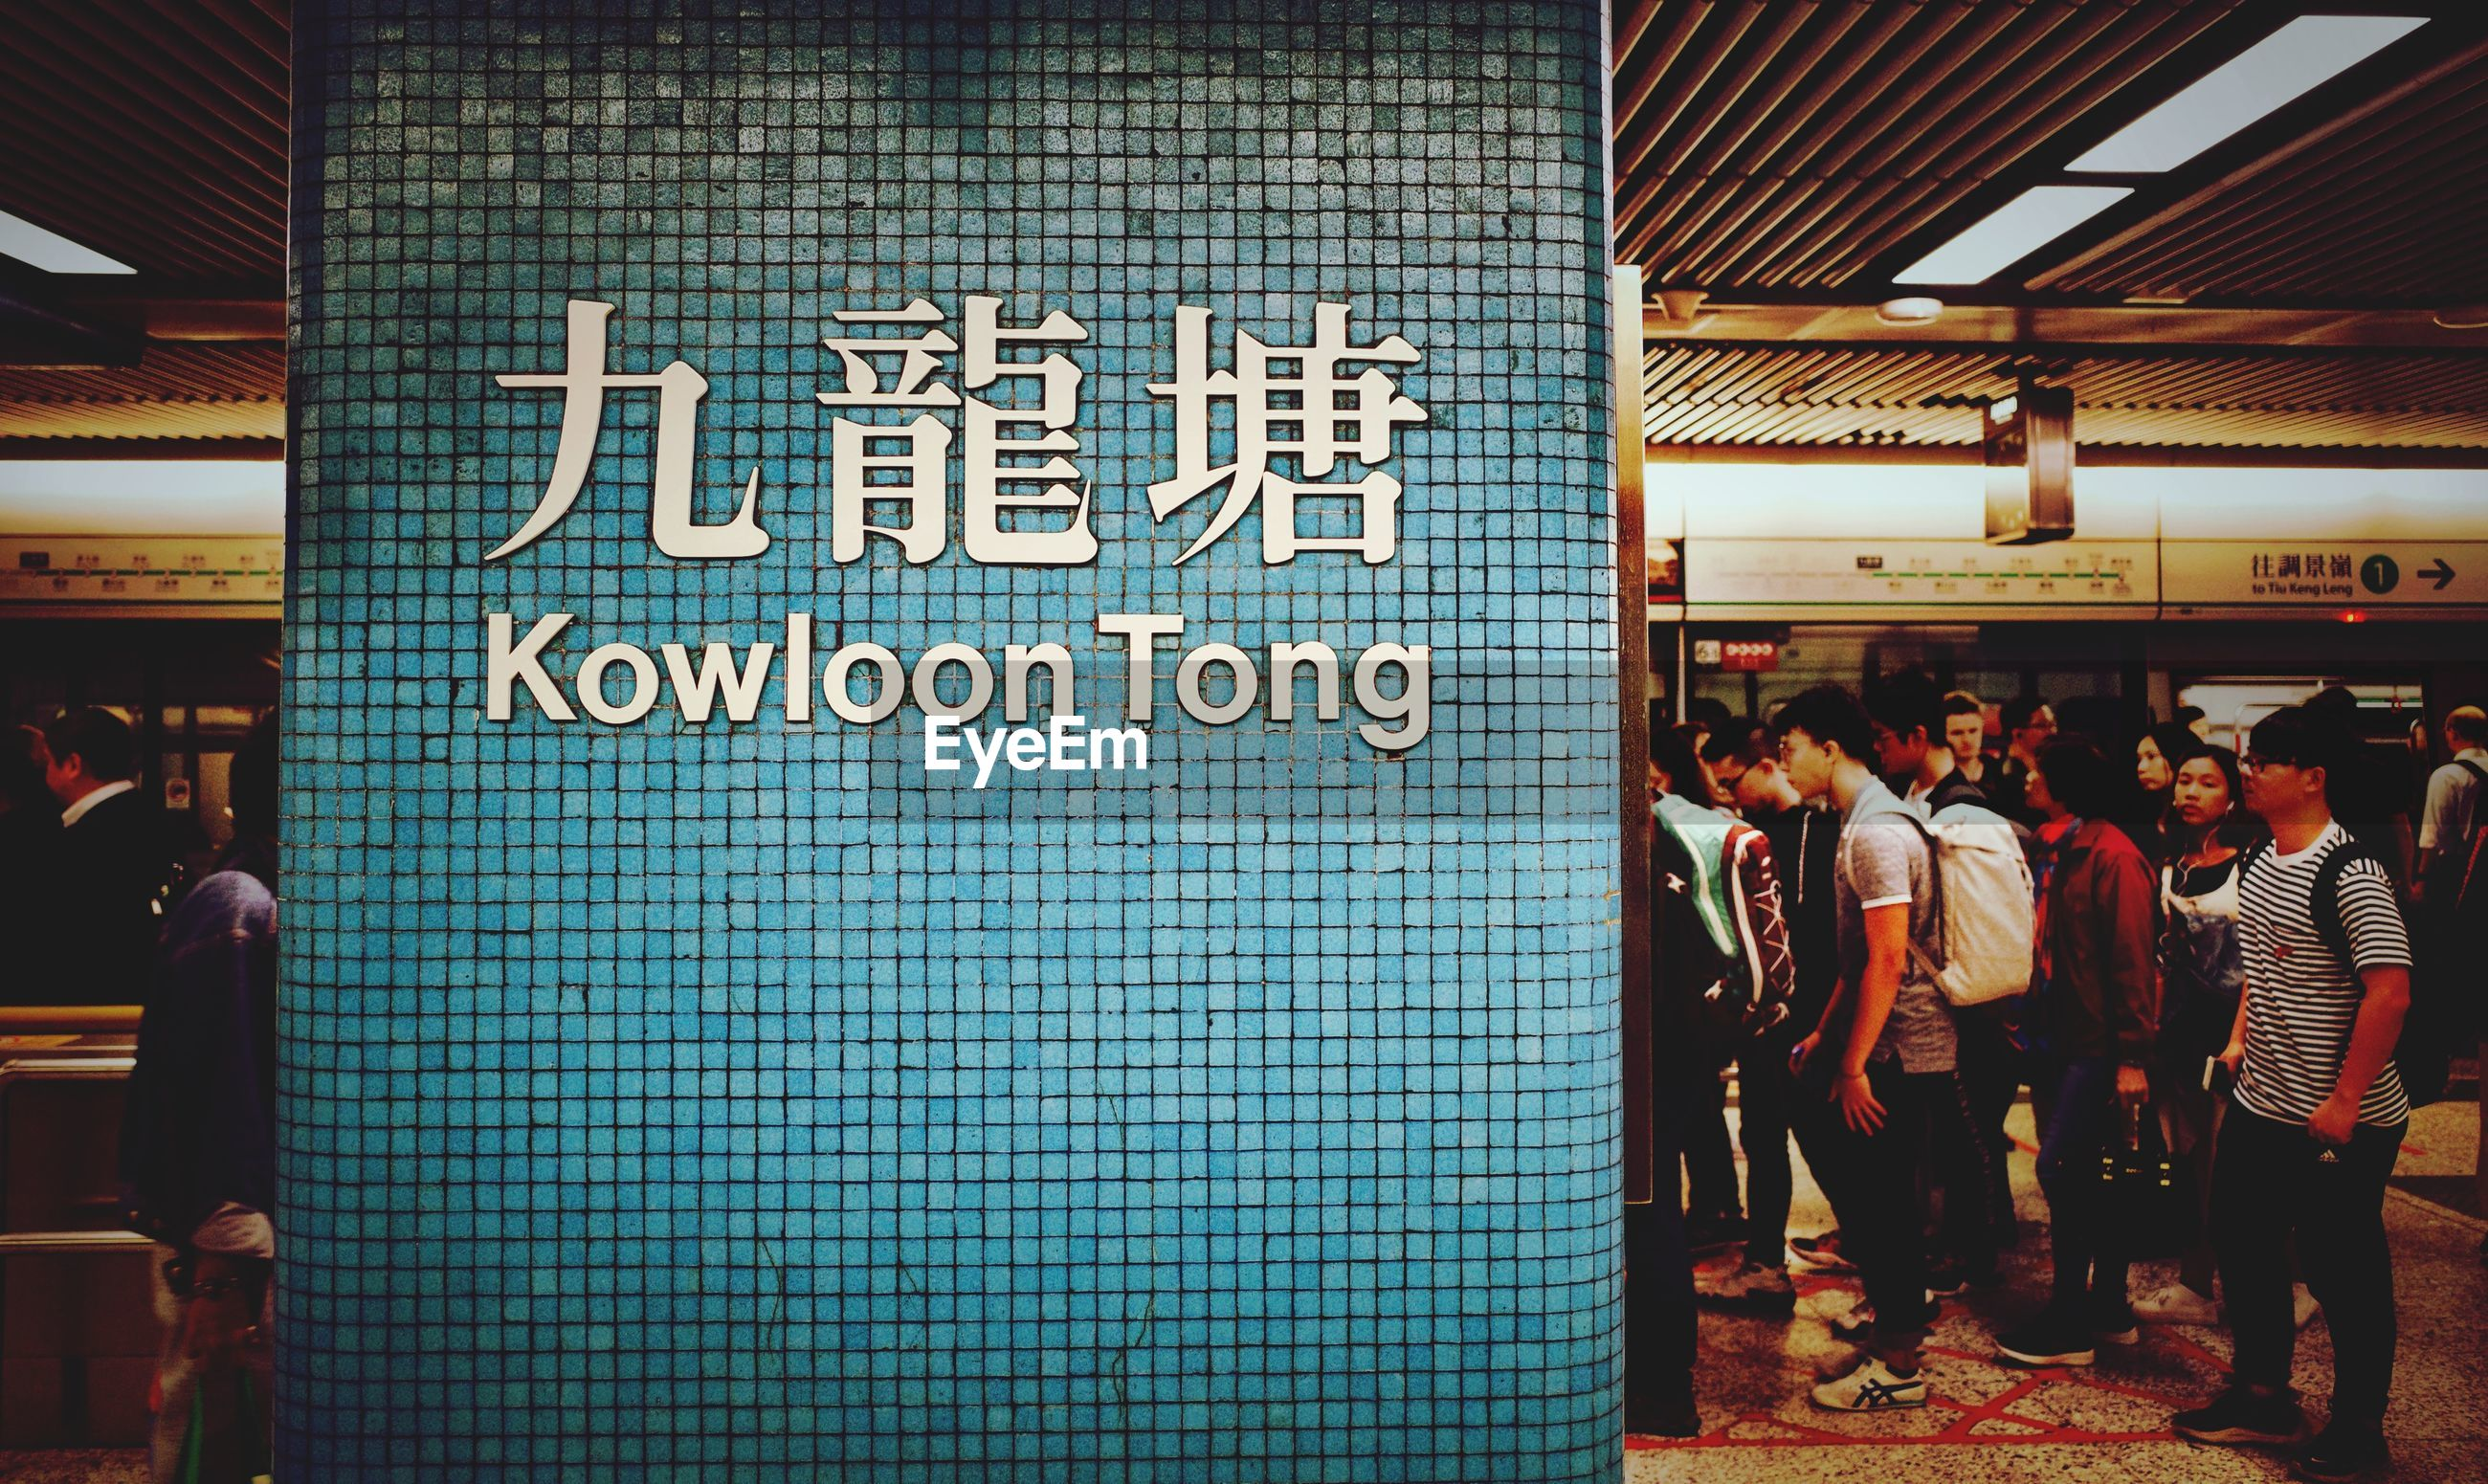 text, group of people, communication, western script, real people, subway station, sign, information, men, architecture, women, script, adult, non-western script, large group of people, information sign, built structure, public transportation, crowd, indoors, waiting